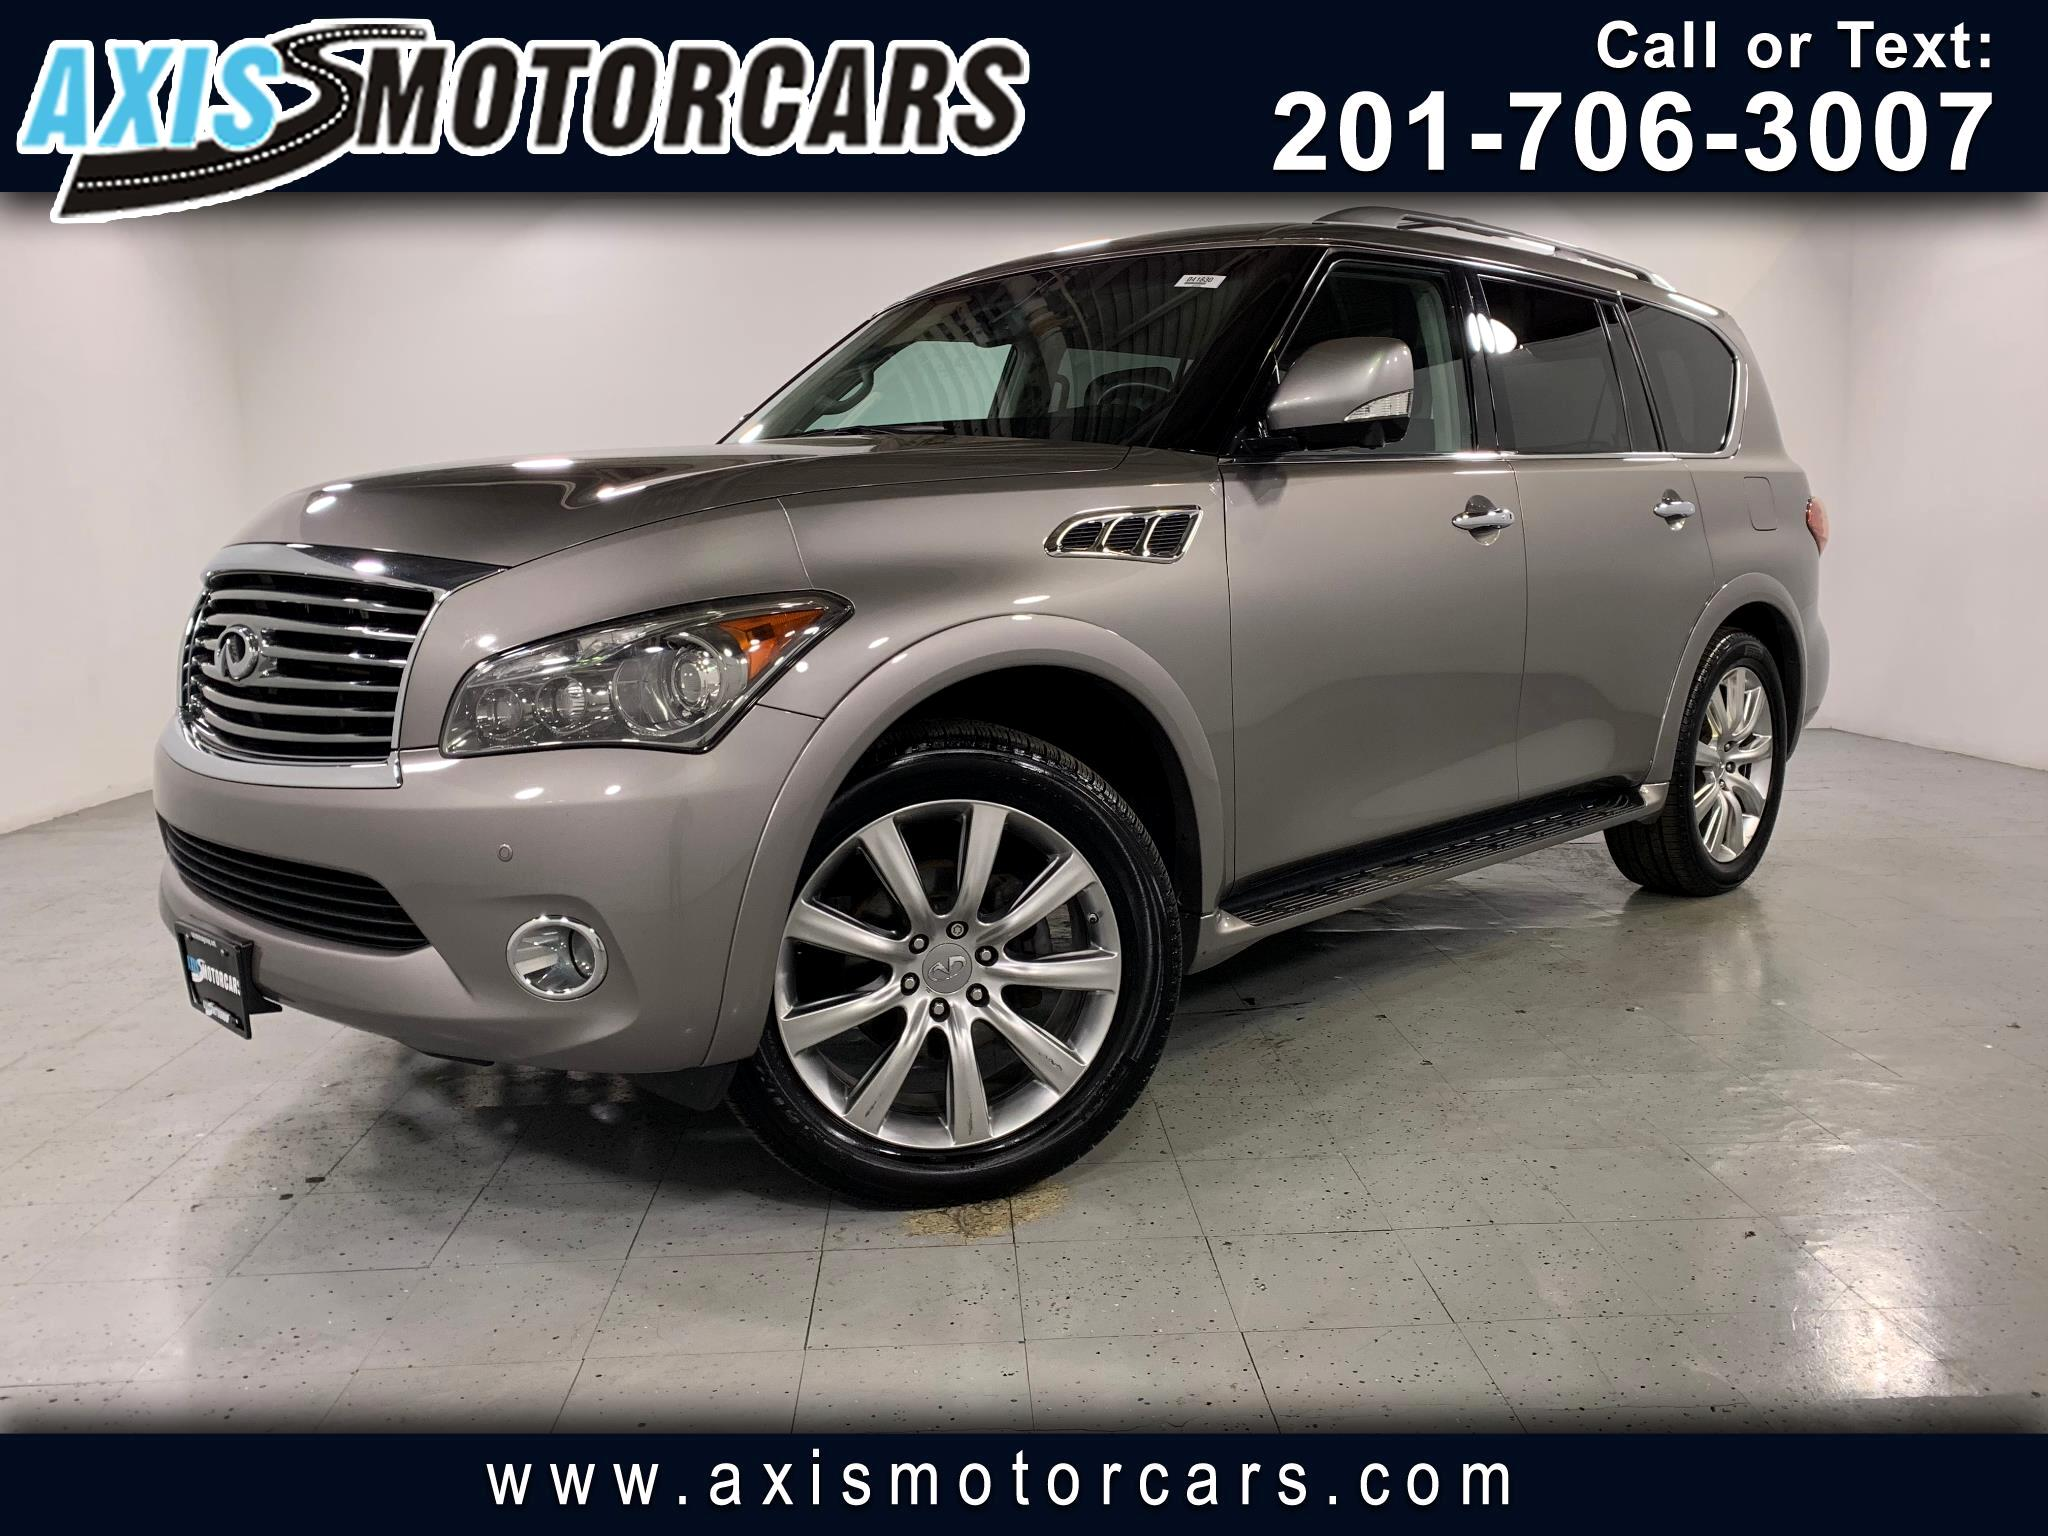 2013 Infiniti QX56 w/Rear Entertainment Bose Sound System Navigation